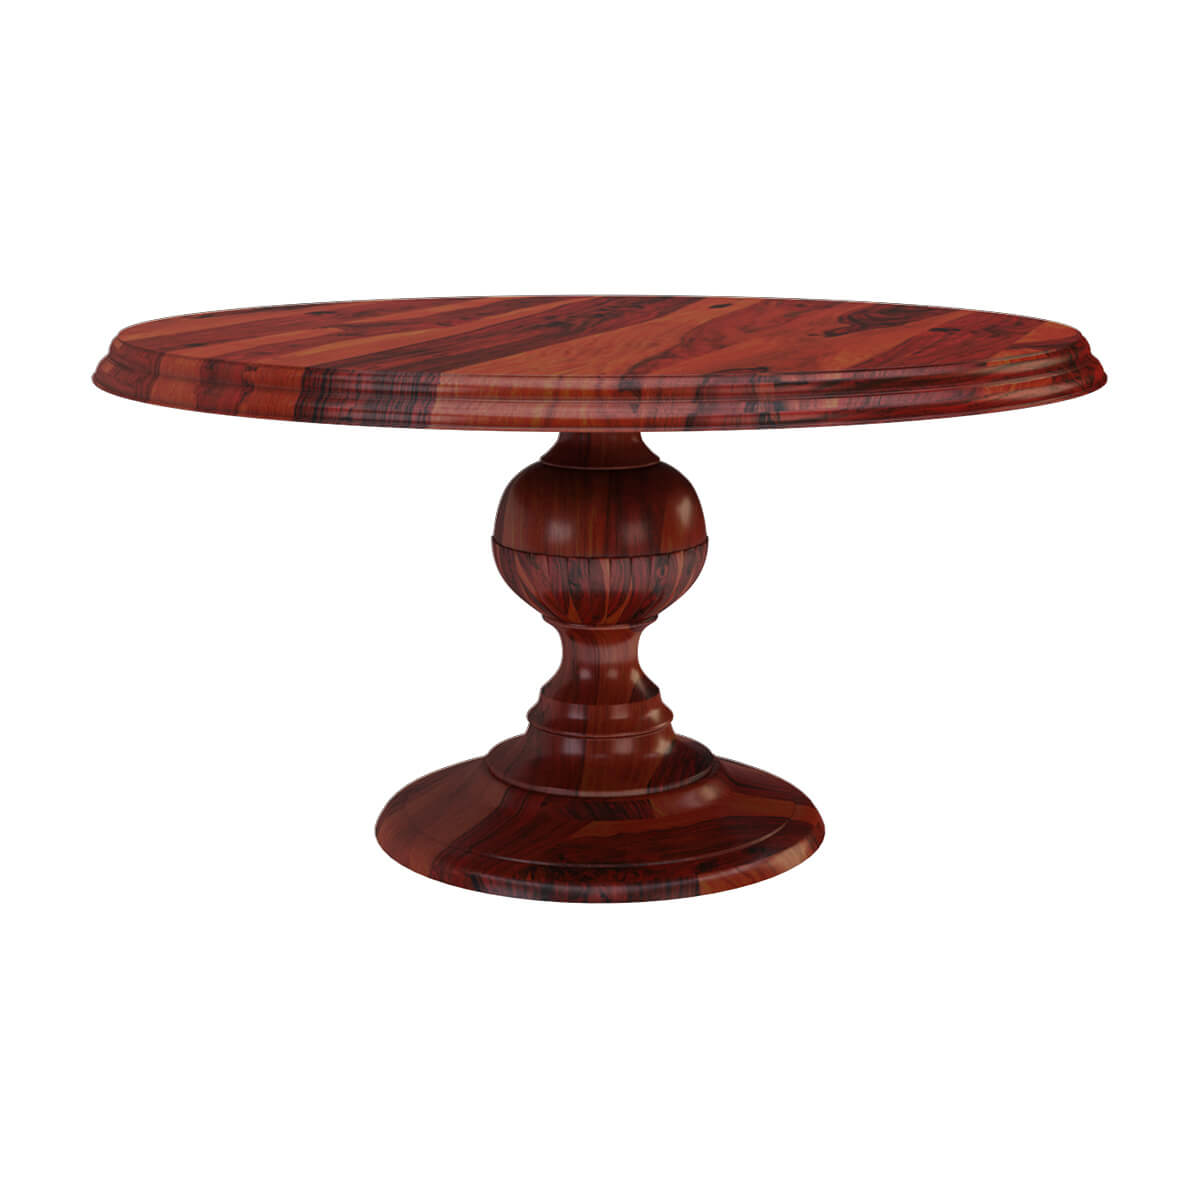 "Round Solid Wood Dining Table: Sierra Concepts 60"" Solid Wood Rustic Pedestal Round"